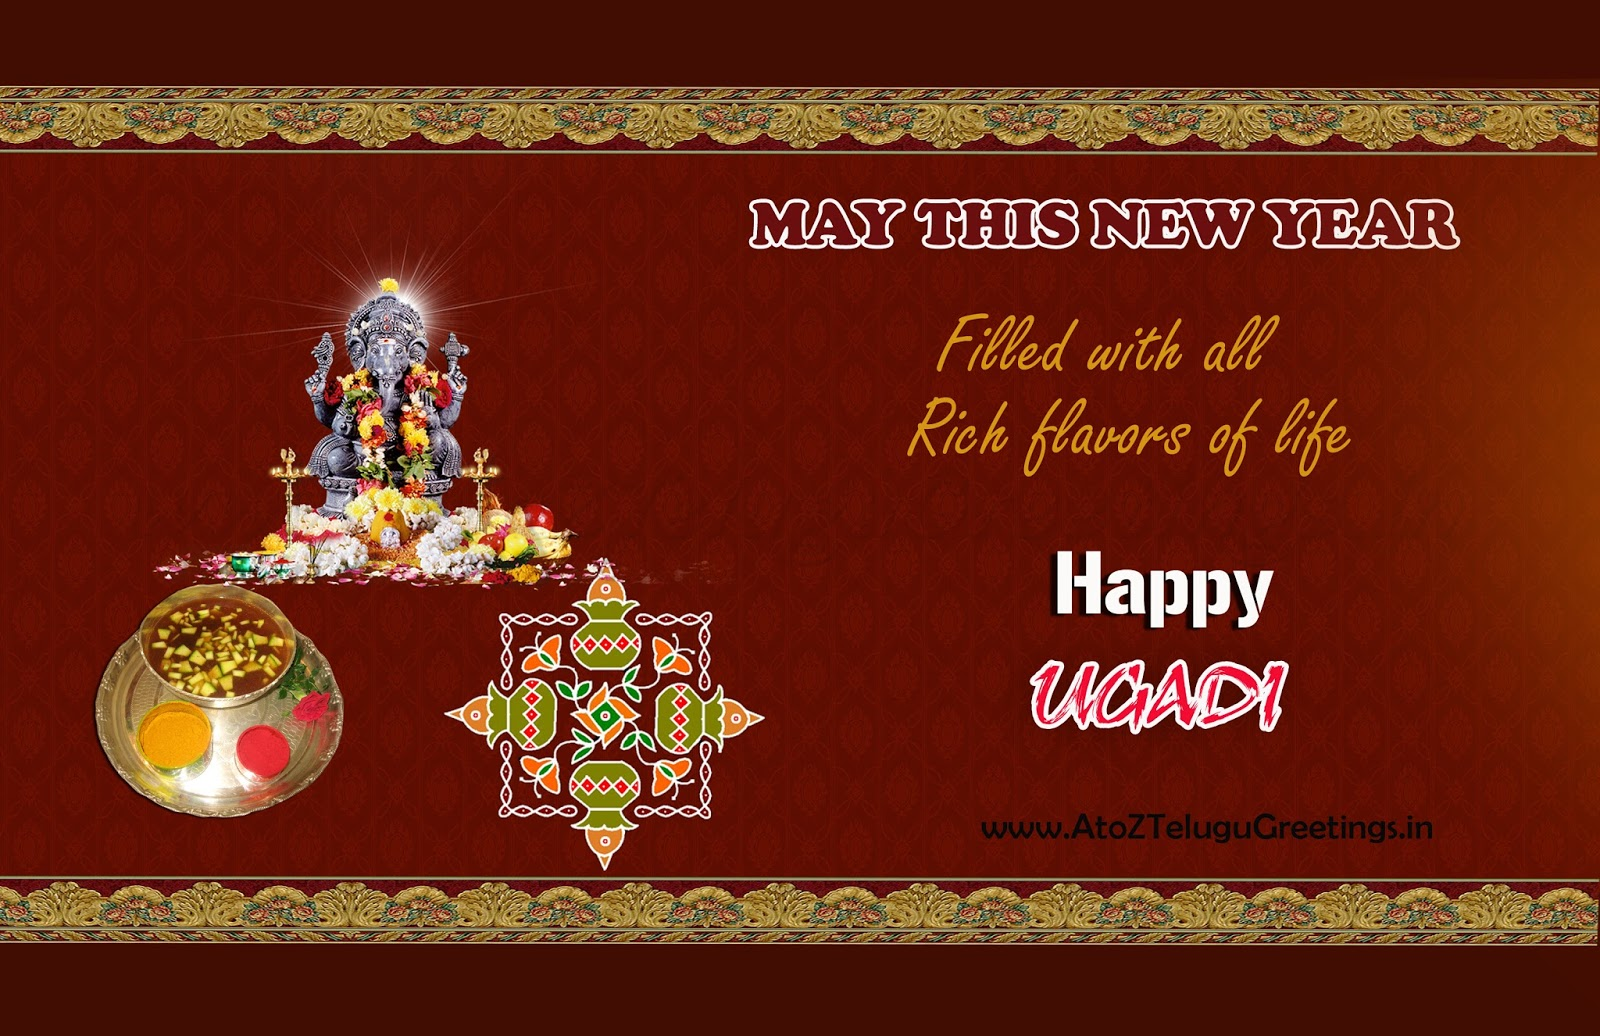 Happy ugadi new year wishes in english kristyandbryce Images